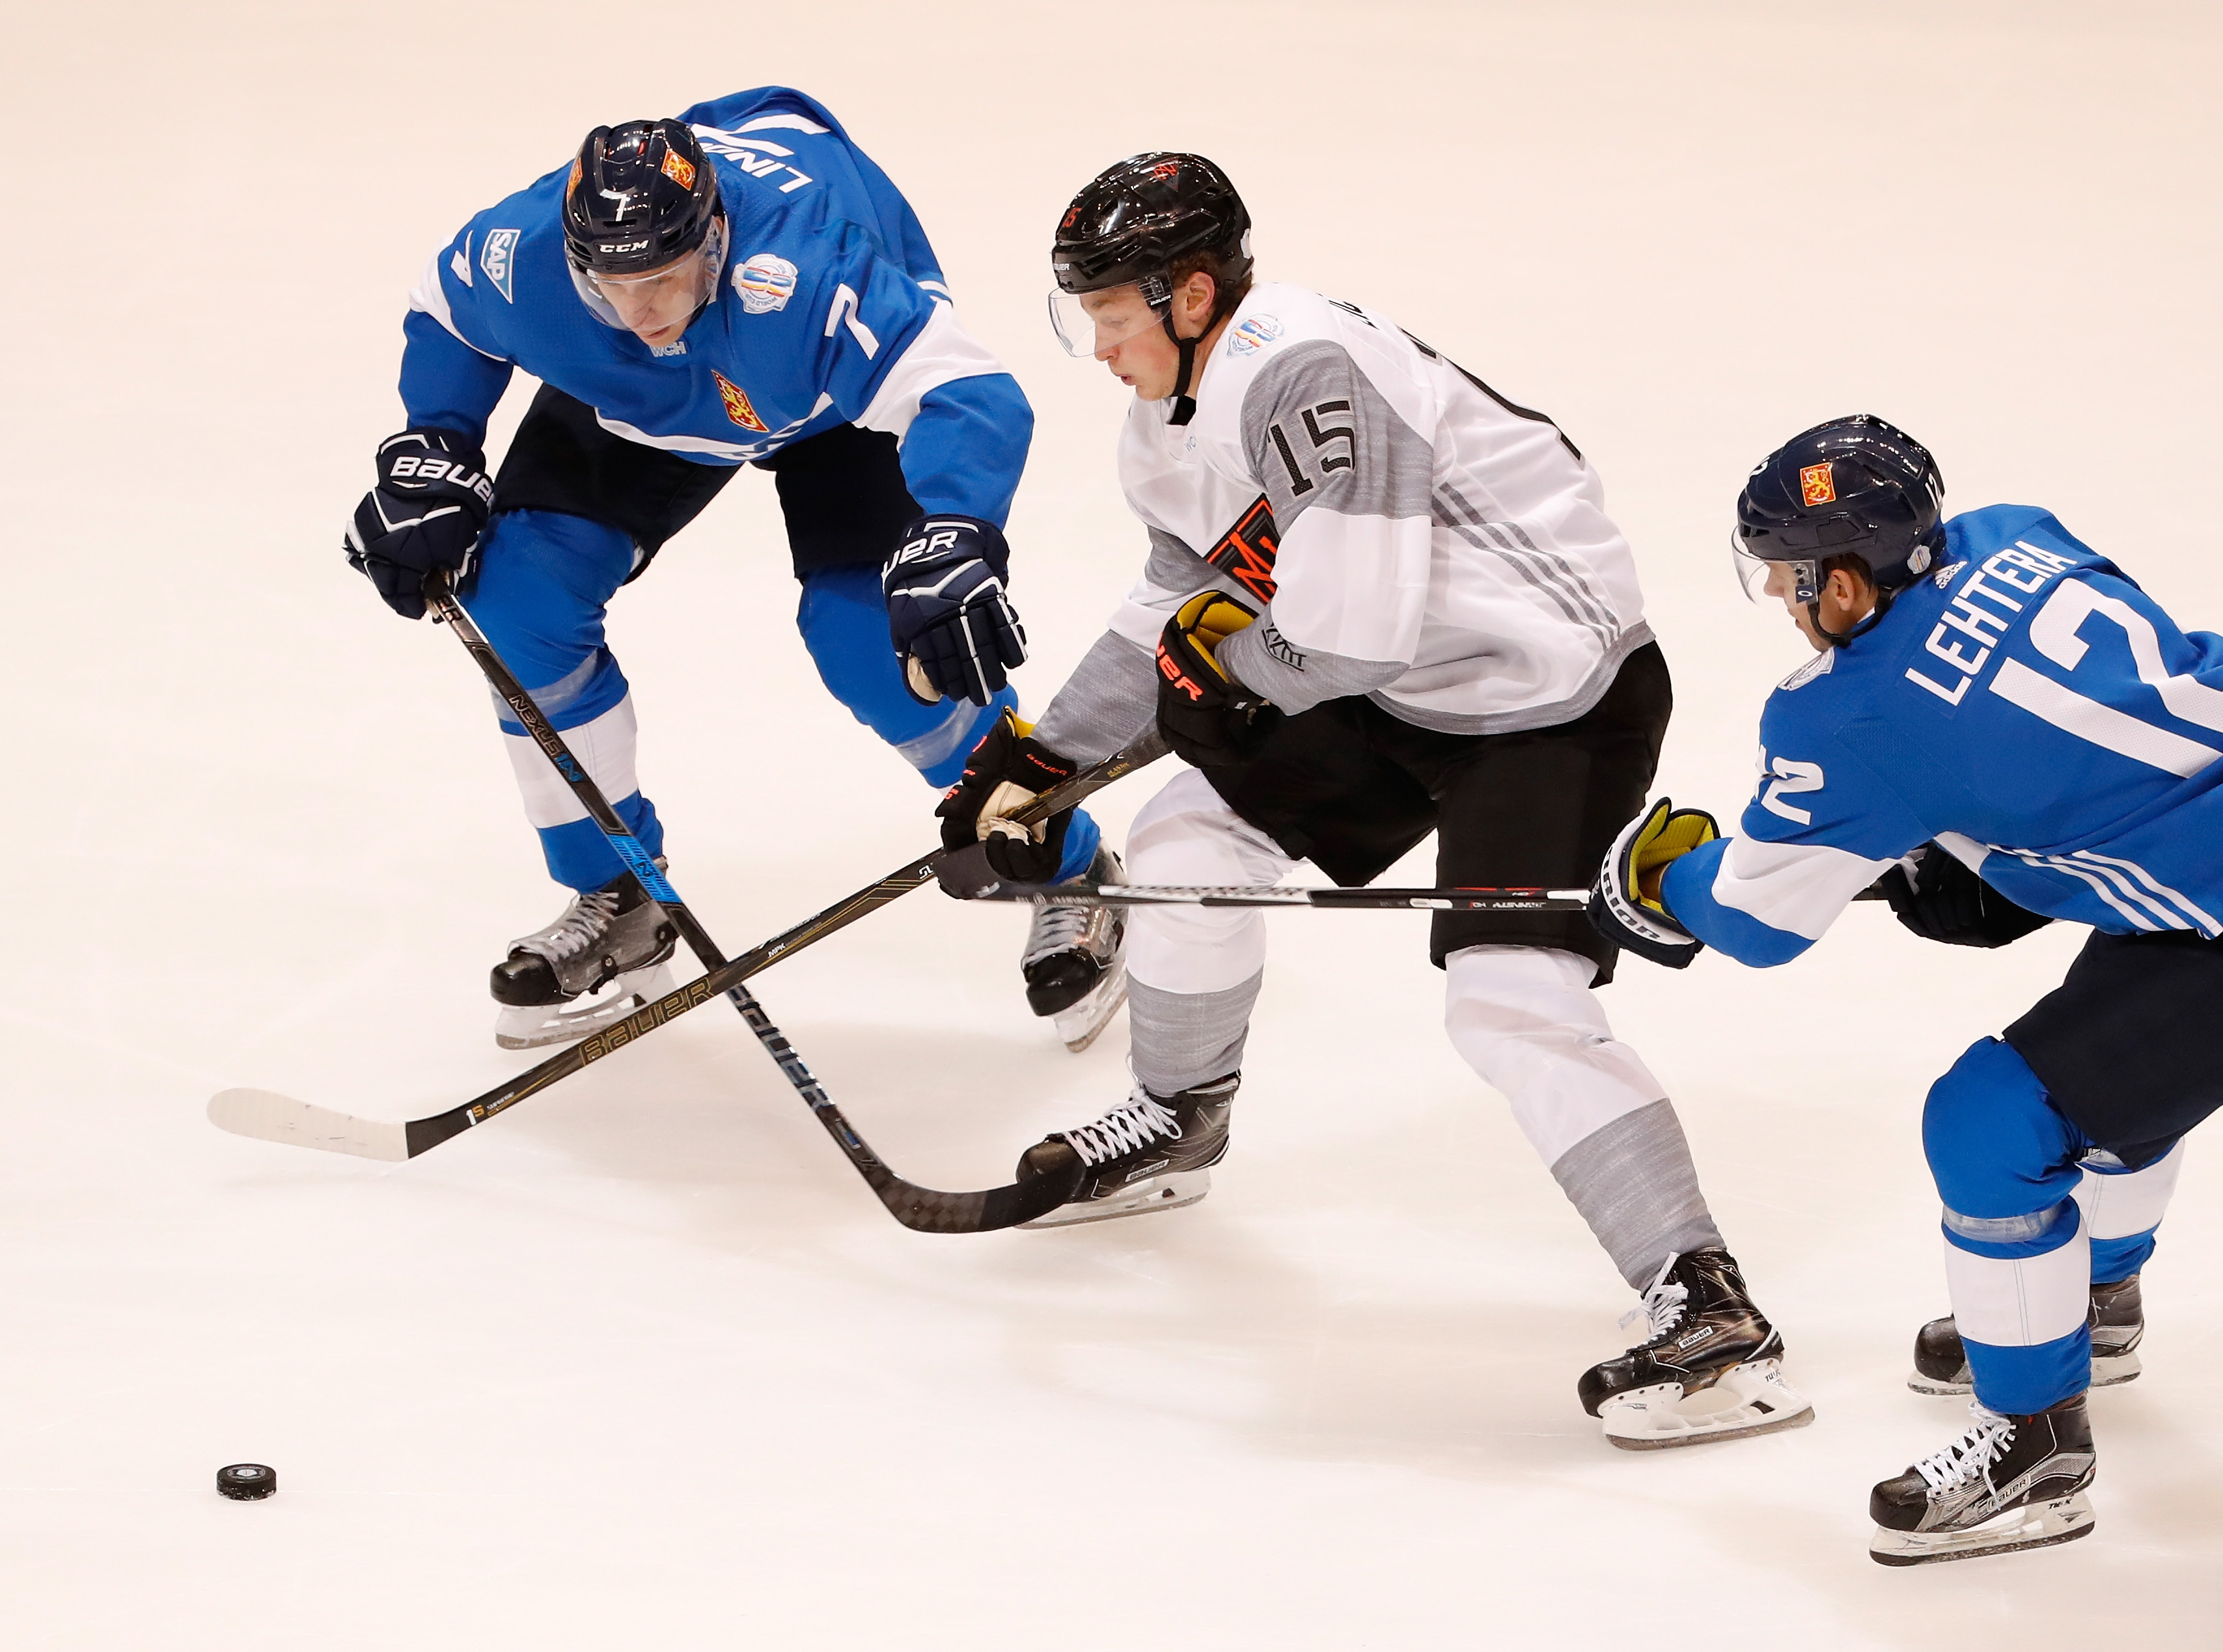 TORONTO, ON - SEPTEMBER 18: Jack Eichel #15 of Team North America tries to get around Esa Lindell #7 of Team Finland in the first period during the World Cup of Hockey at the Air Canada Center on September 18, 2016 in Toronto, Canada. (Photo by Gregory Shamus/Getty Images)